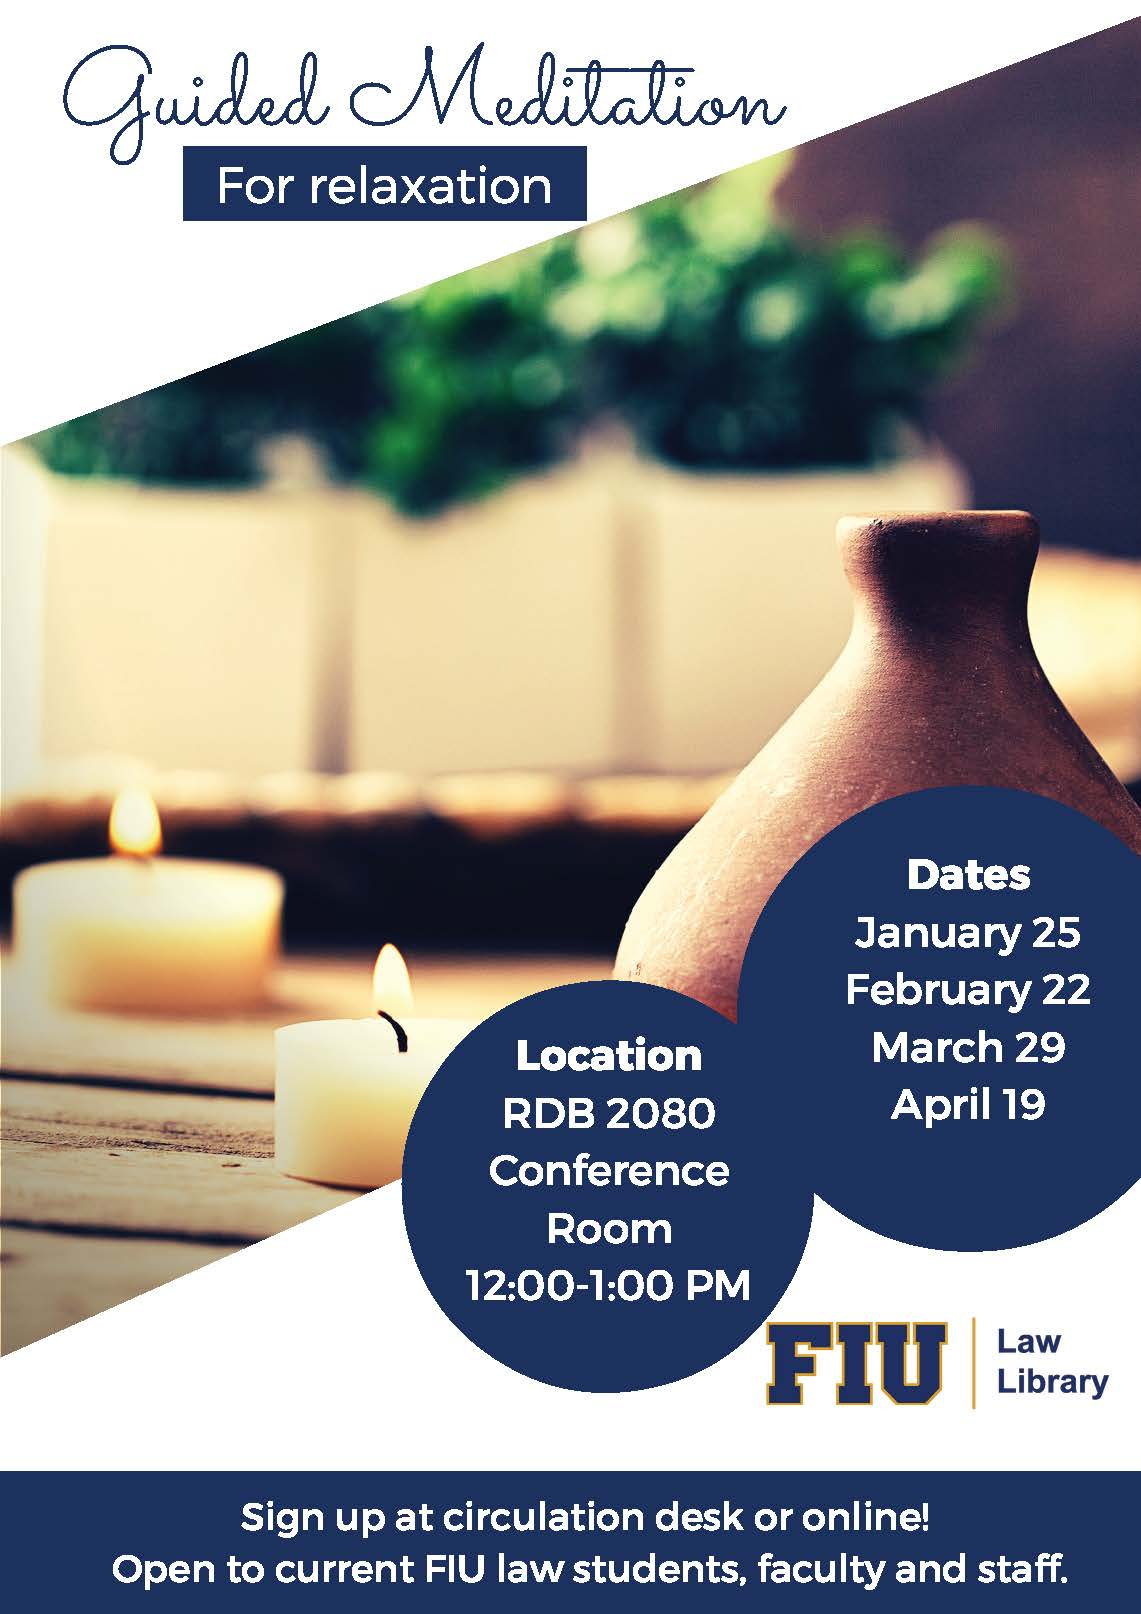 Guided Meditation for Relaxation Series – Spring 2017 Schedule